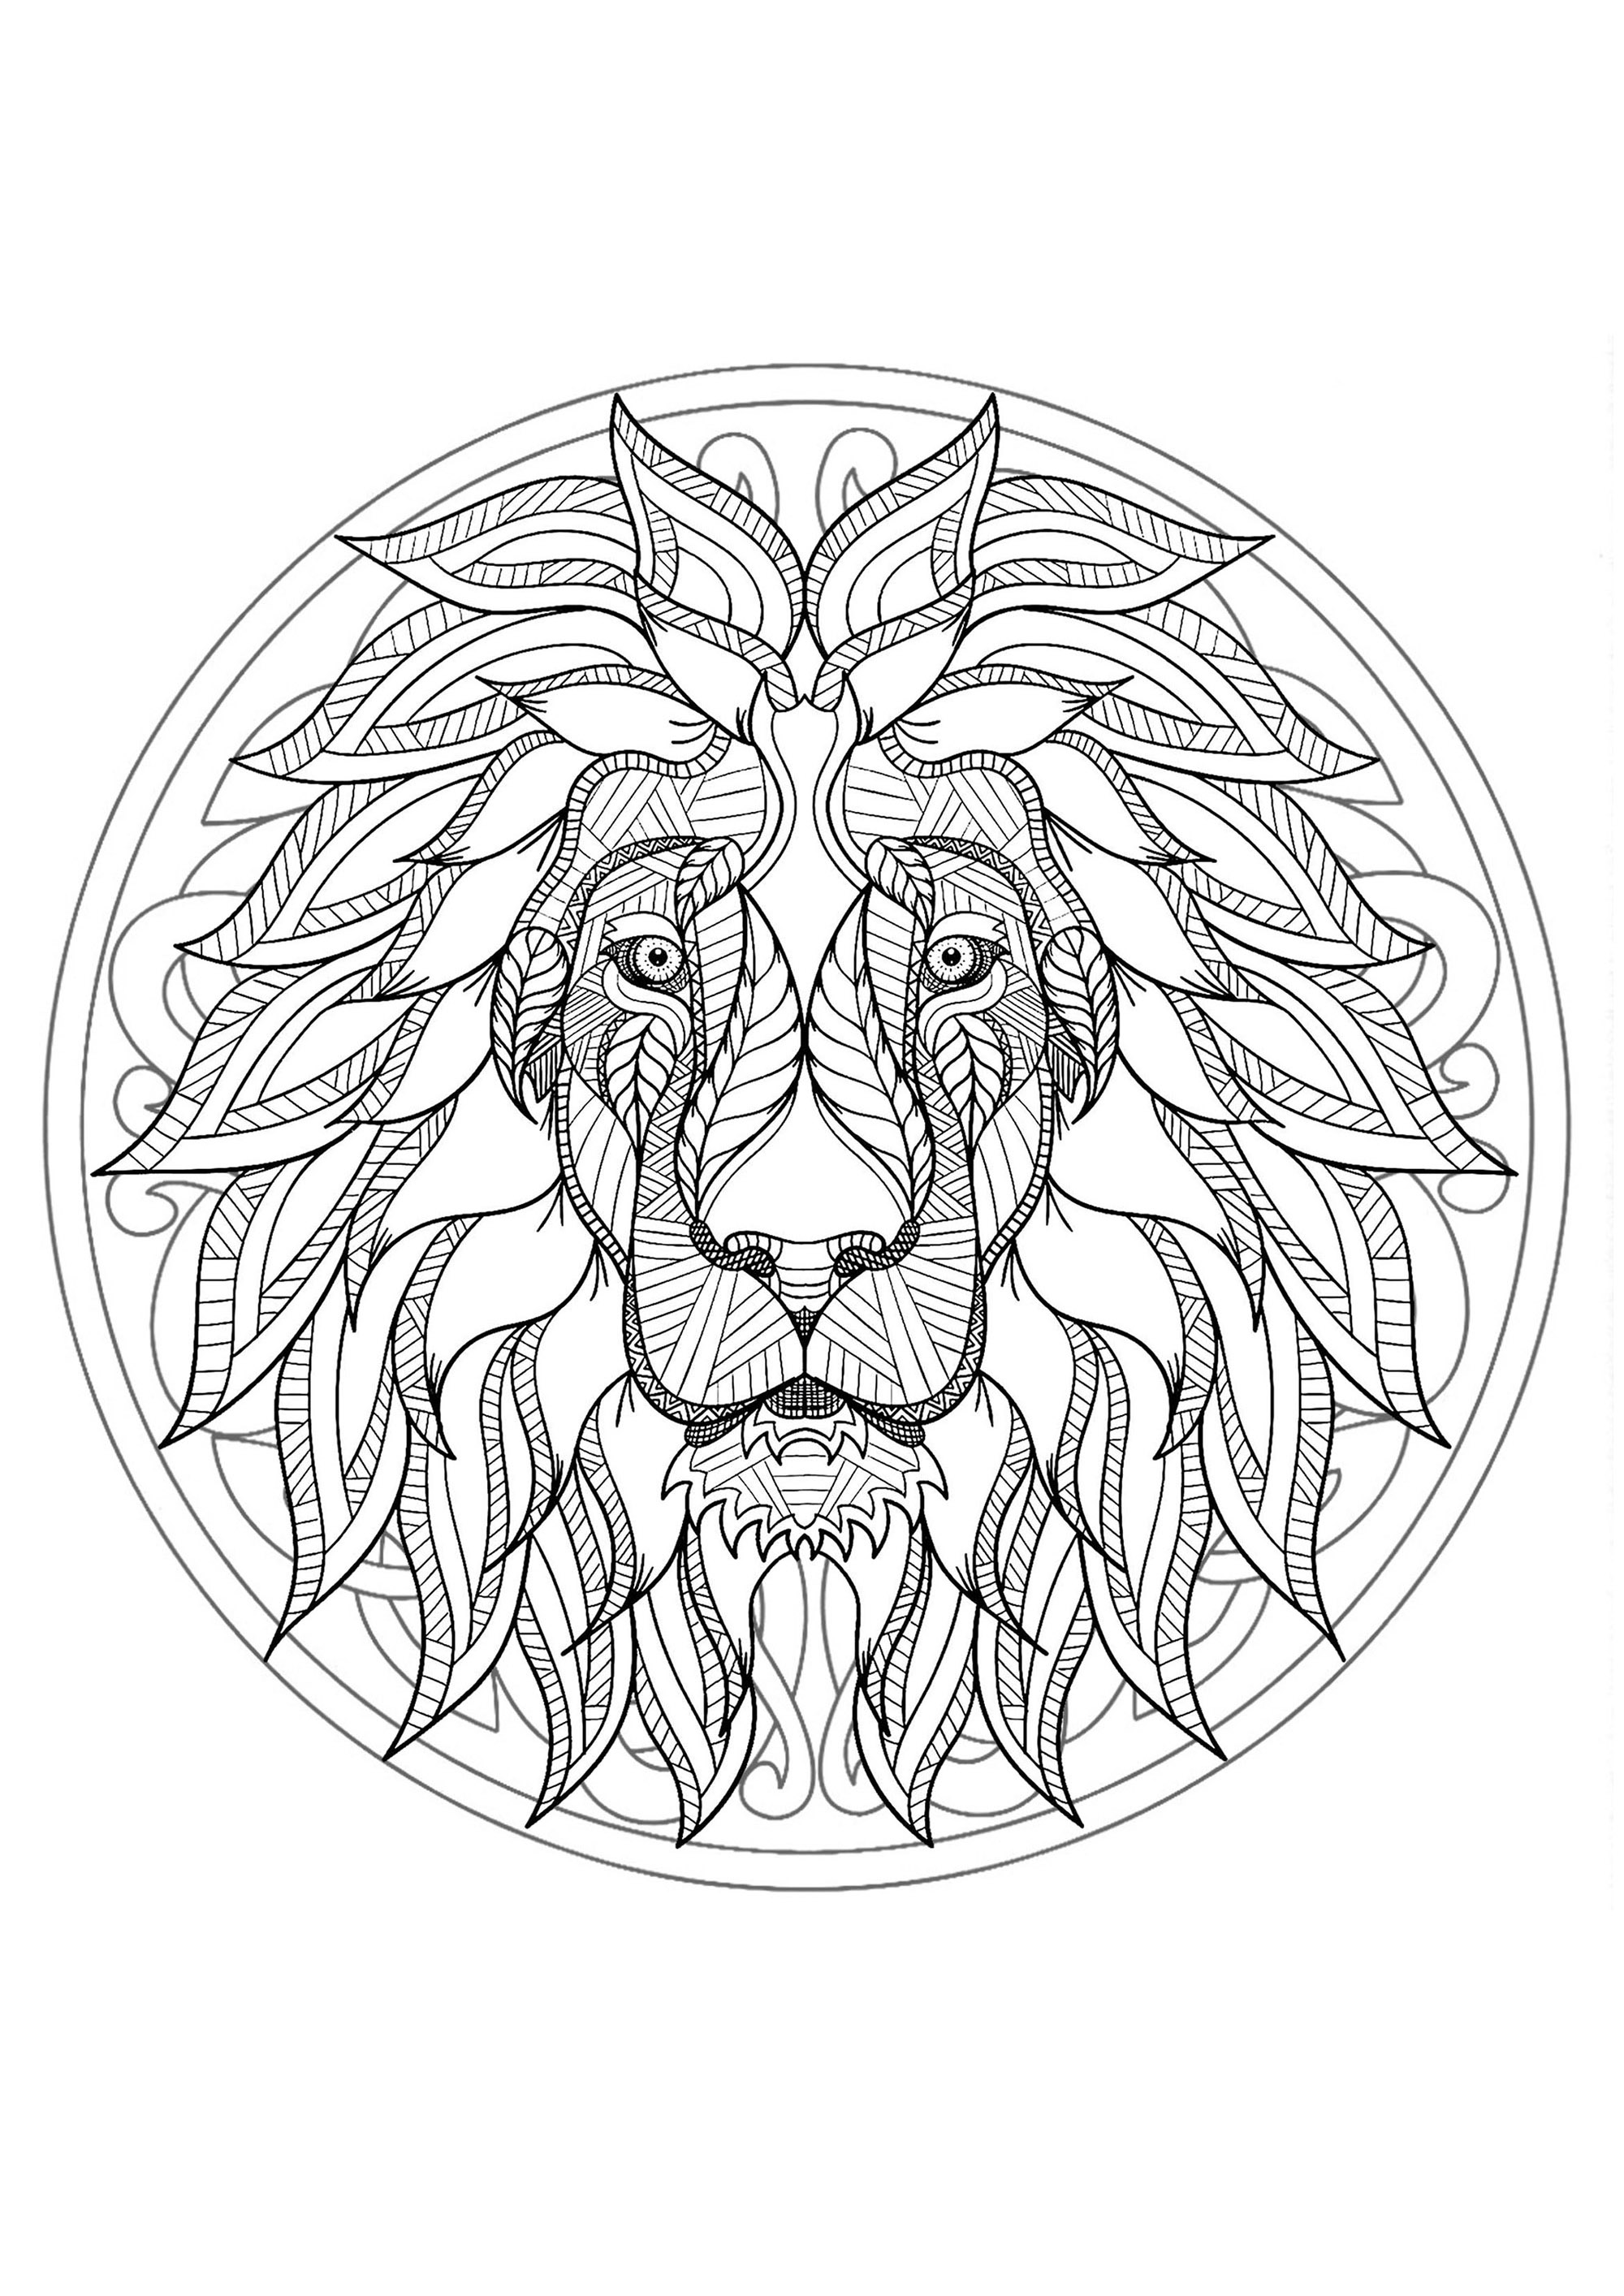 free mandala coloring pages for kids free mandala coloring pages for kids printable coloring pages free mandala coloring kids for